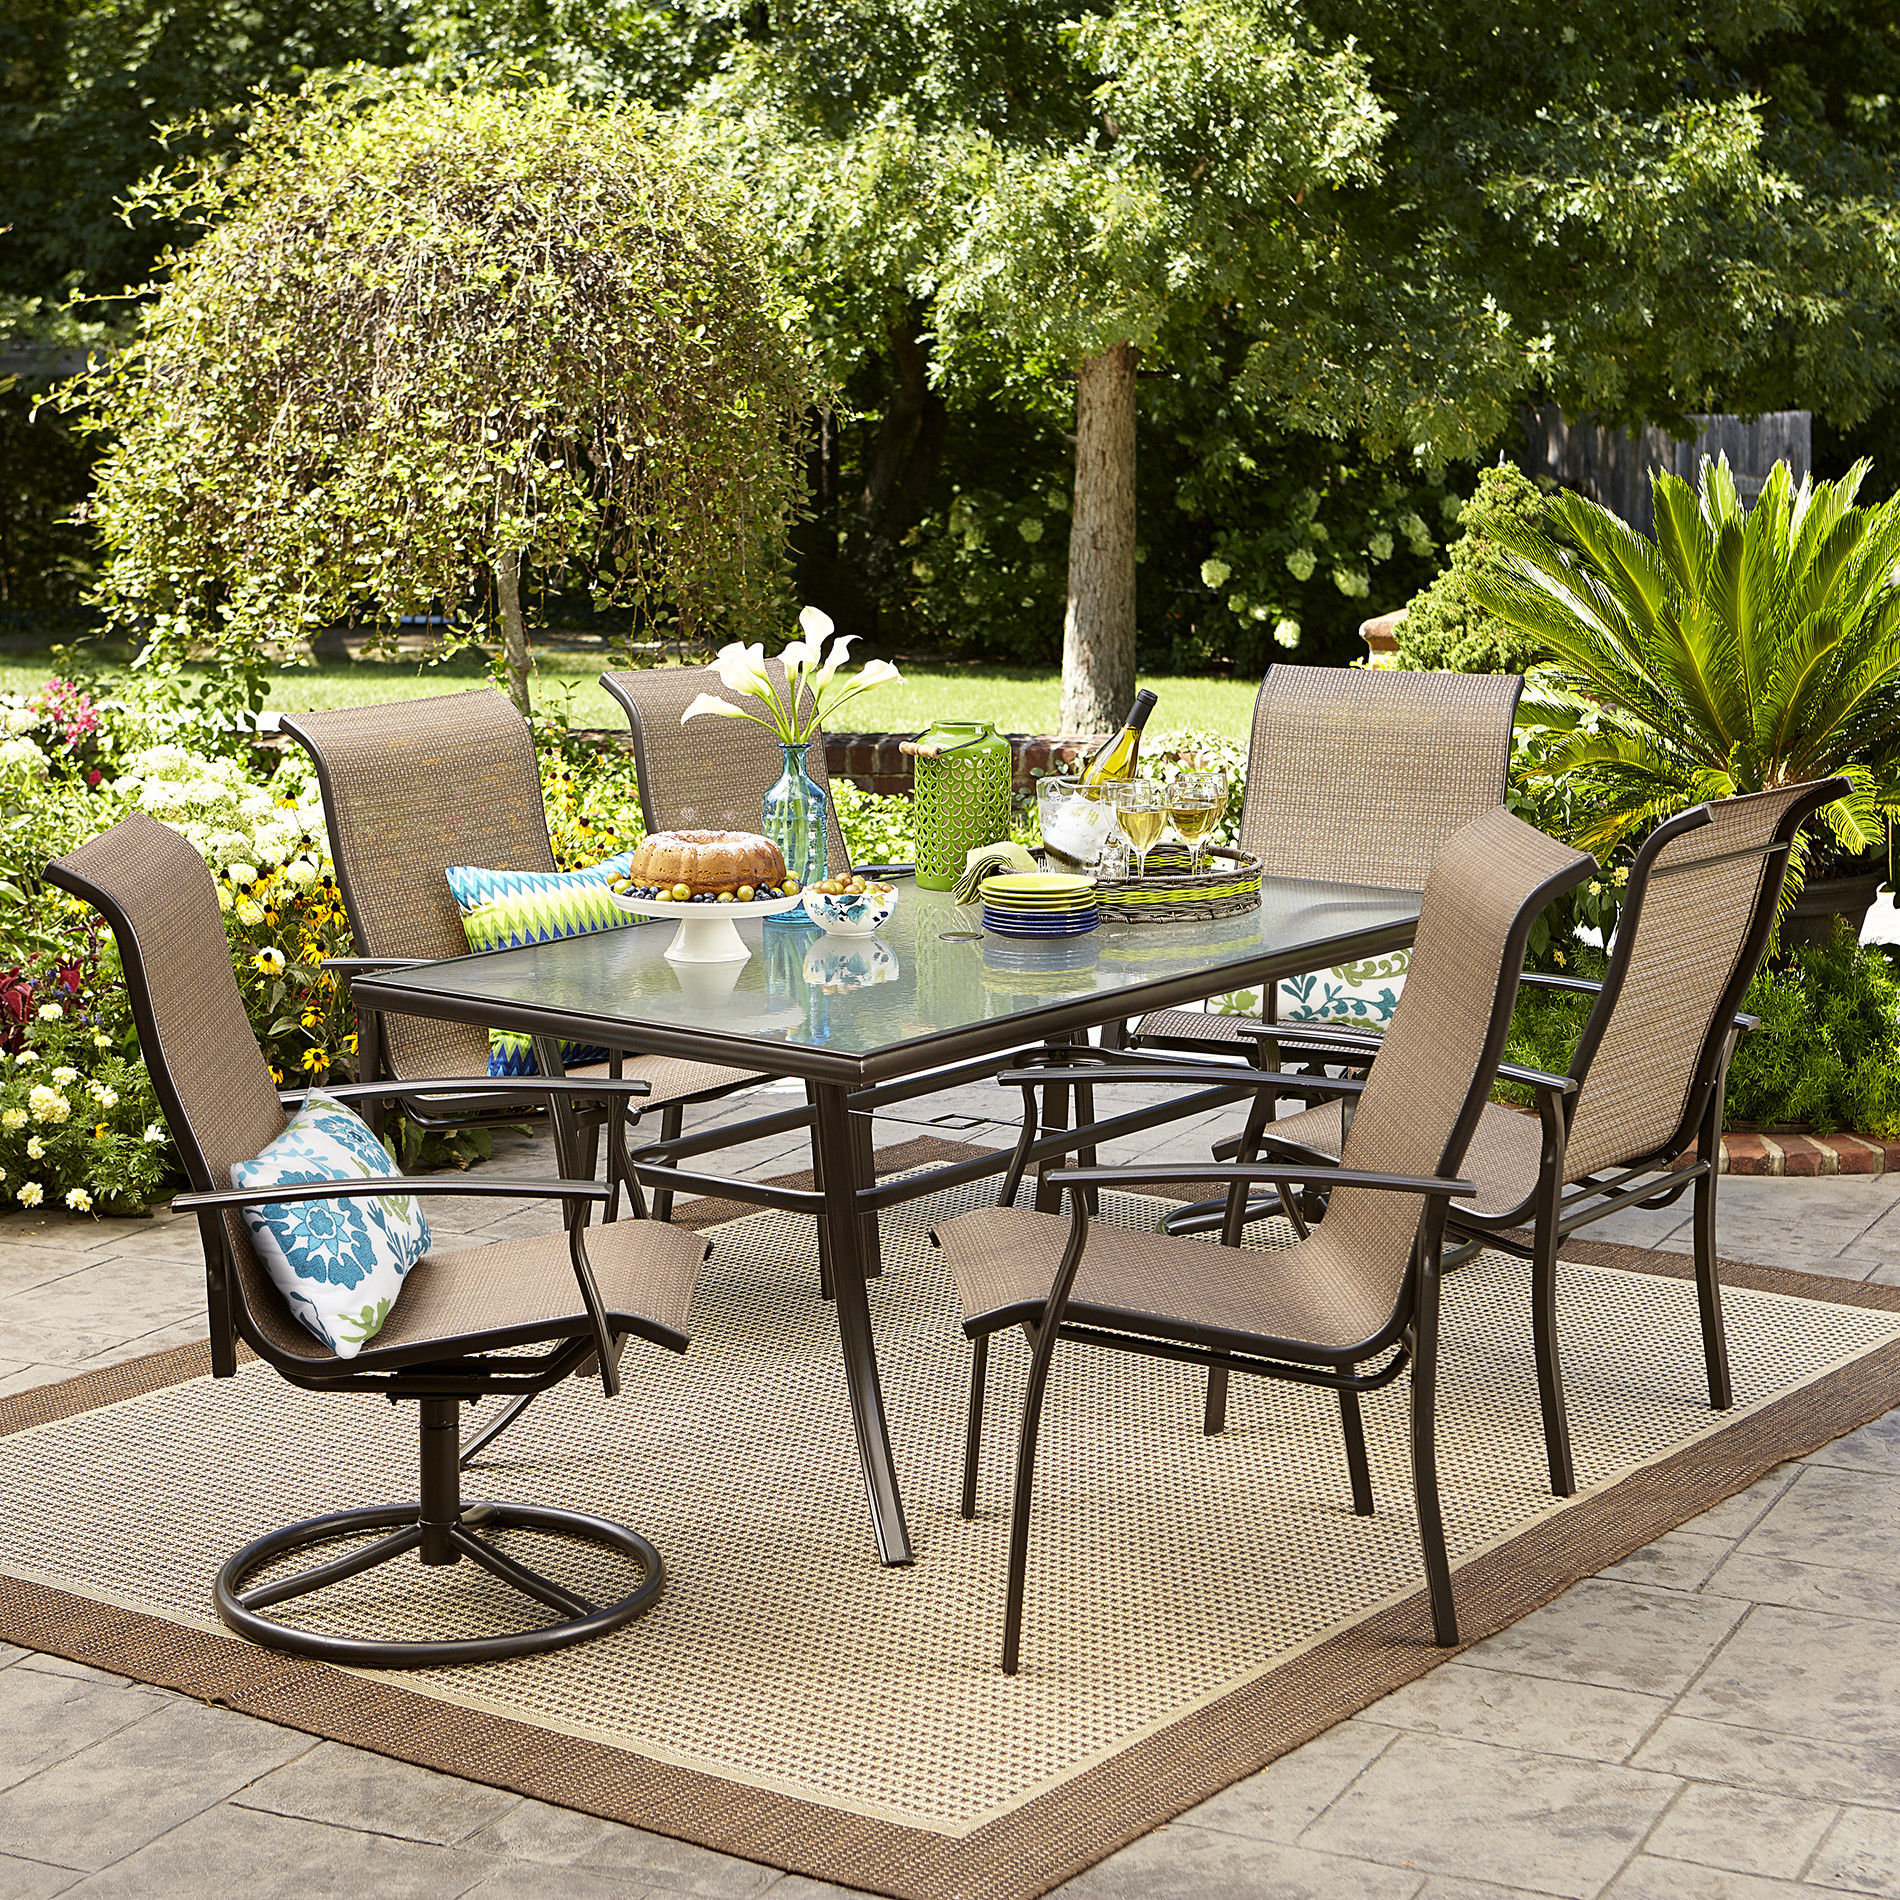 Best ideas about Outdoor Patio Dining Sets . Save or Pin Garden Oasis Harrison 7 pc Textured Glass Top Dining Set Now.